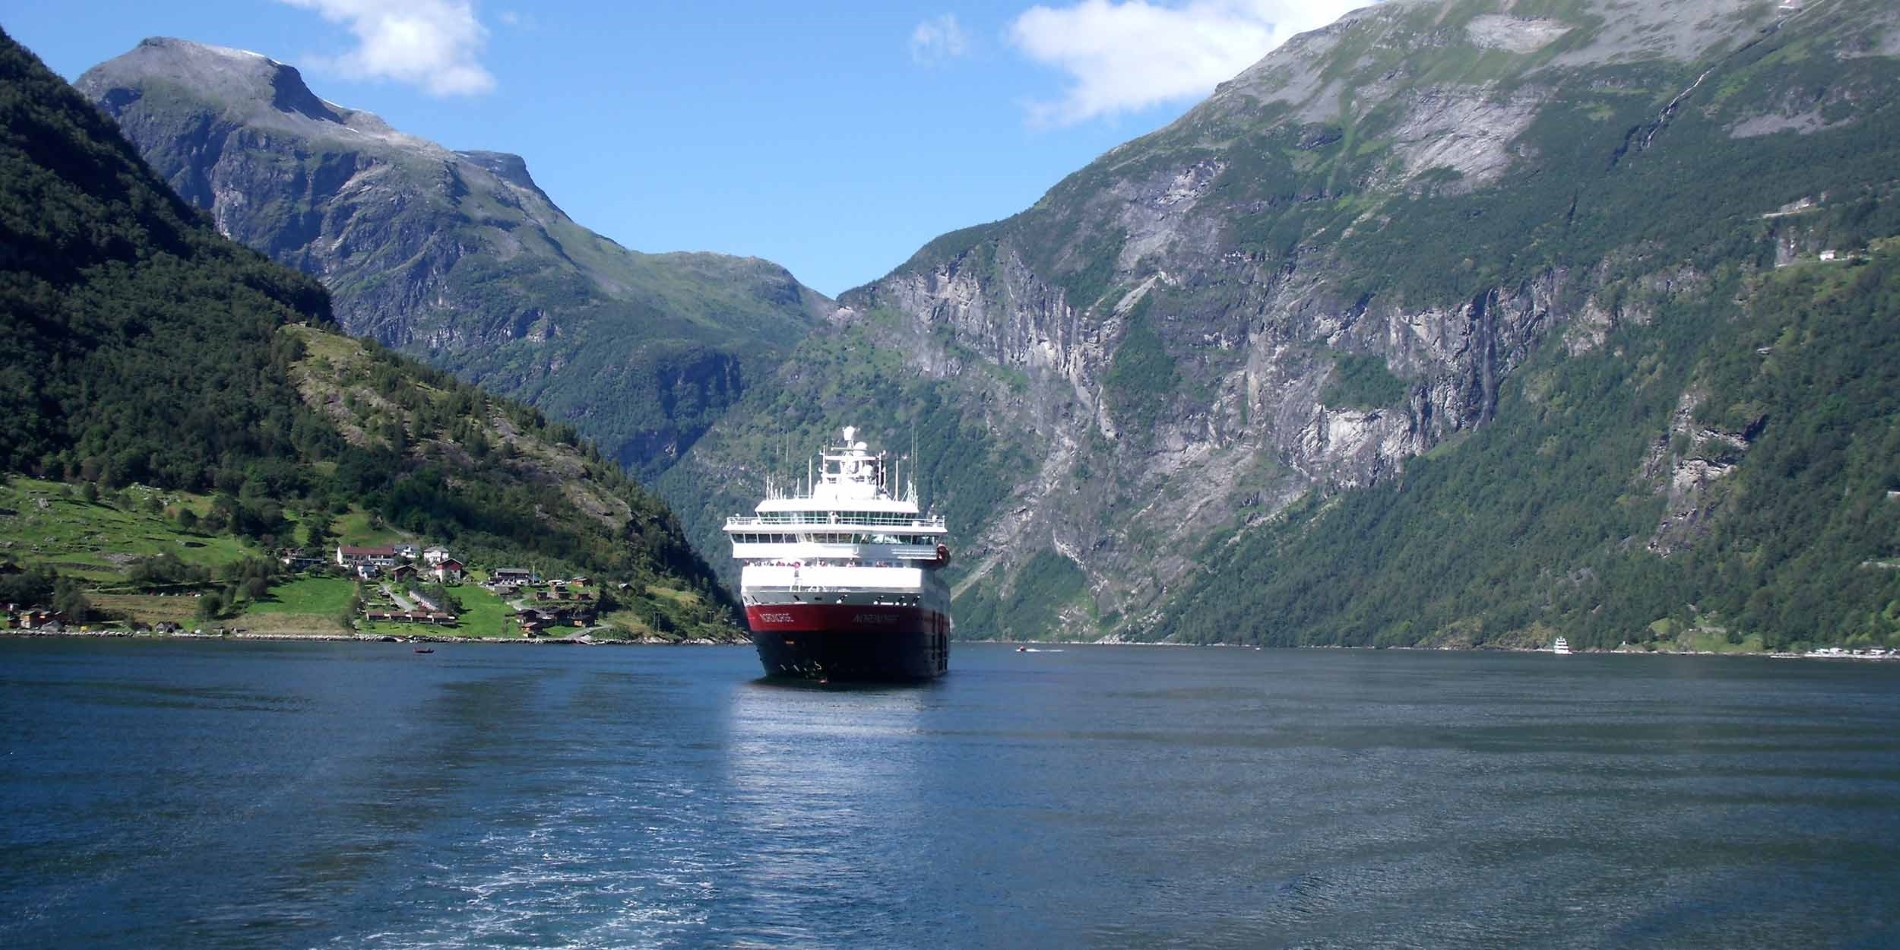 2500x1250_MS-Nordnorge_Geiranger_BY_Marion-Palm_Guest-Image.jpg